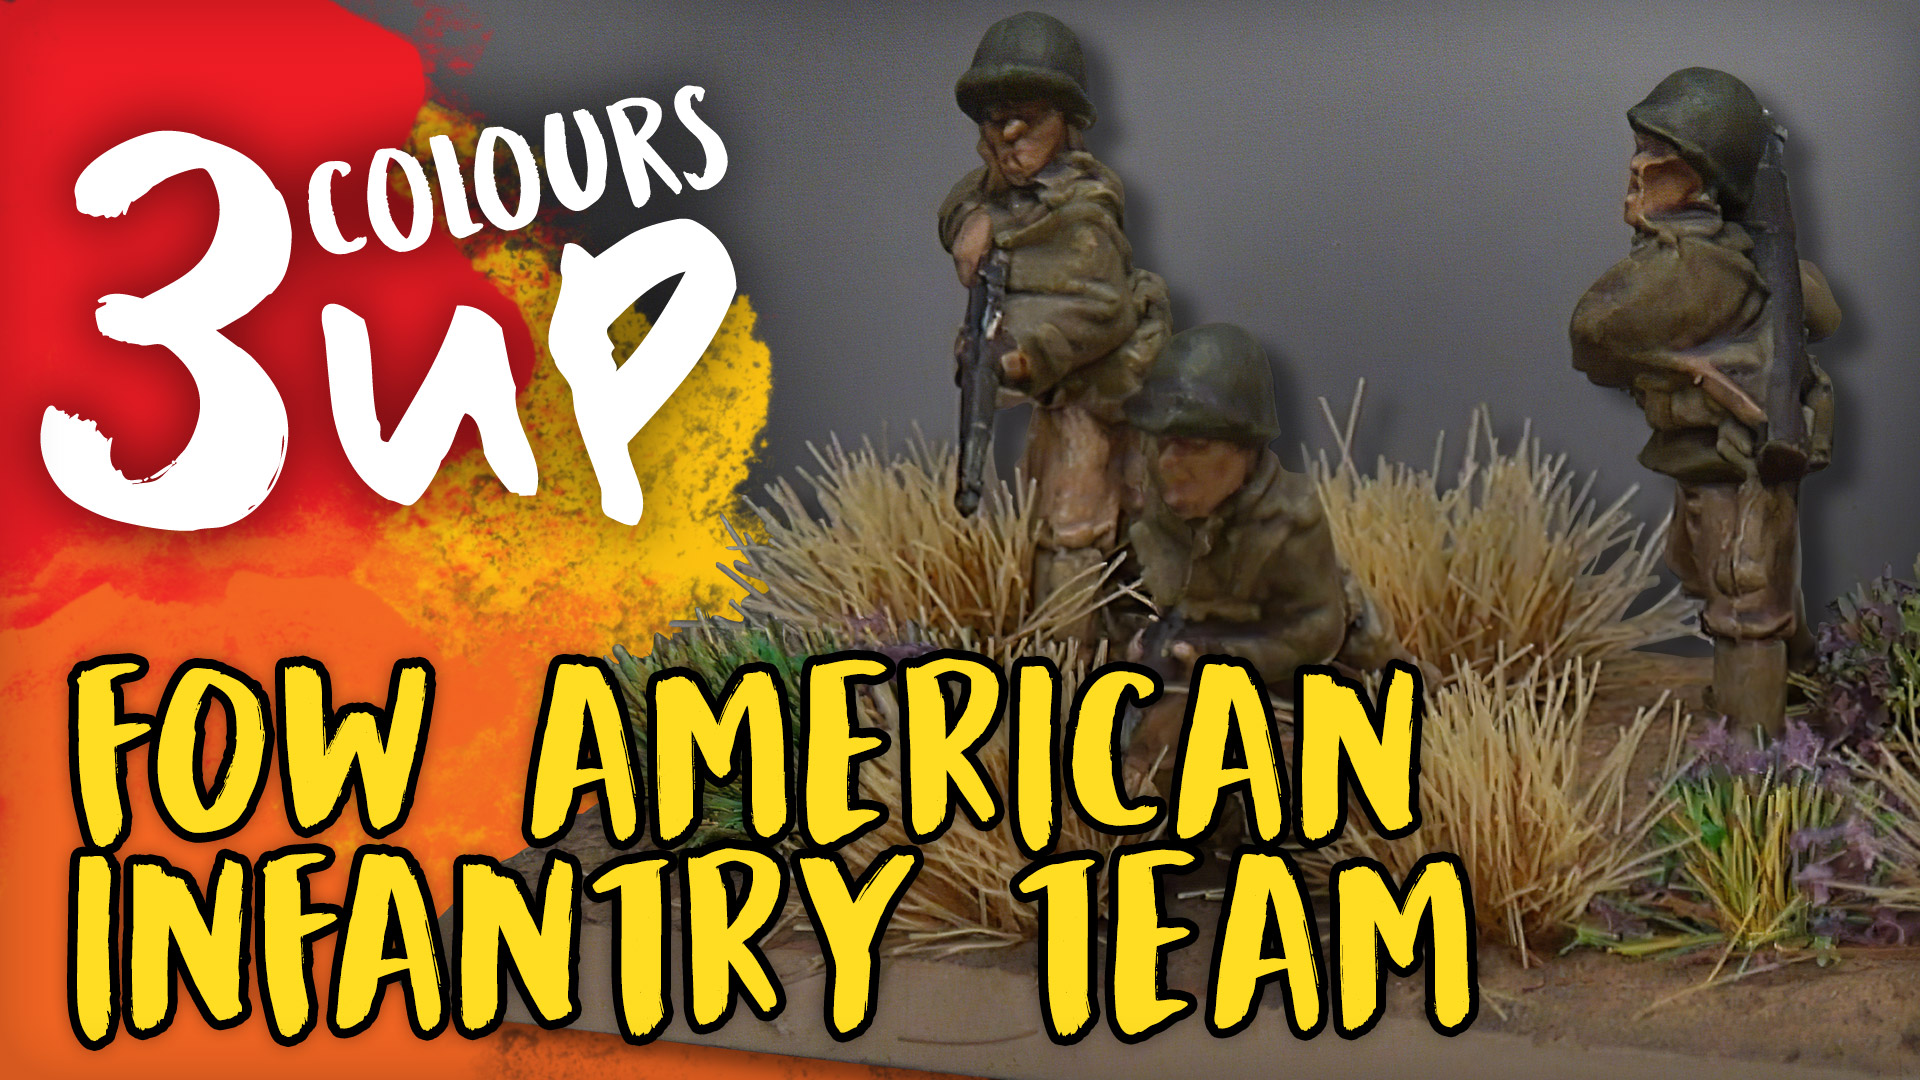 FoW-American-infantry-team-coverimage